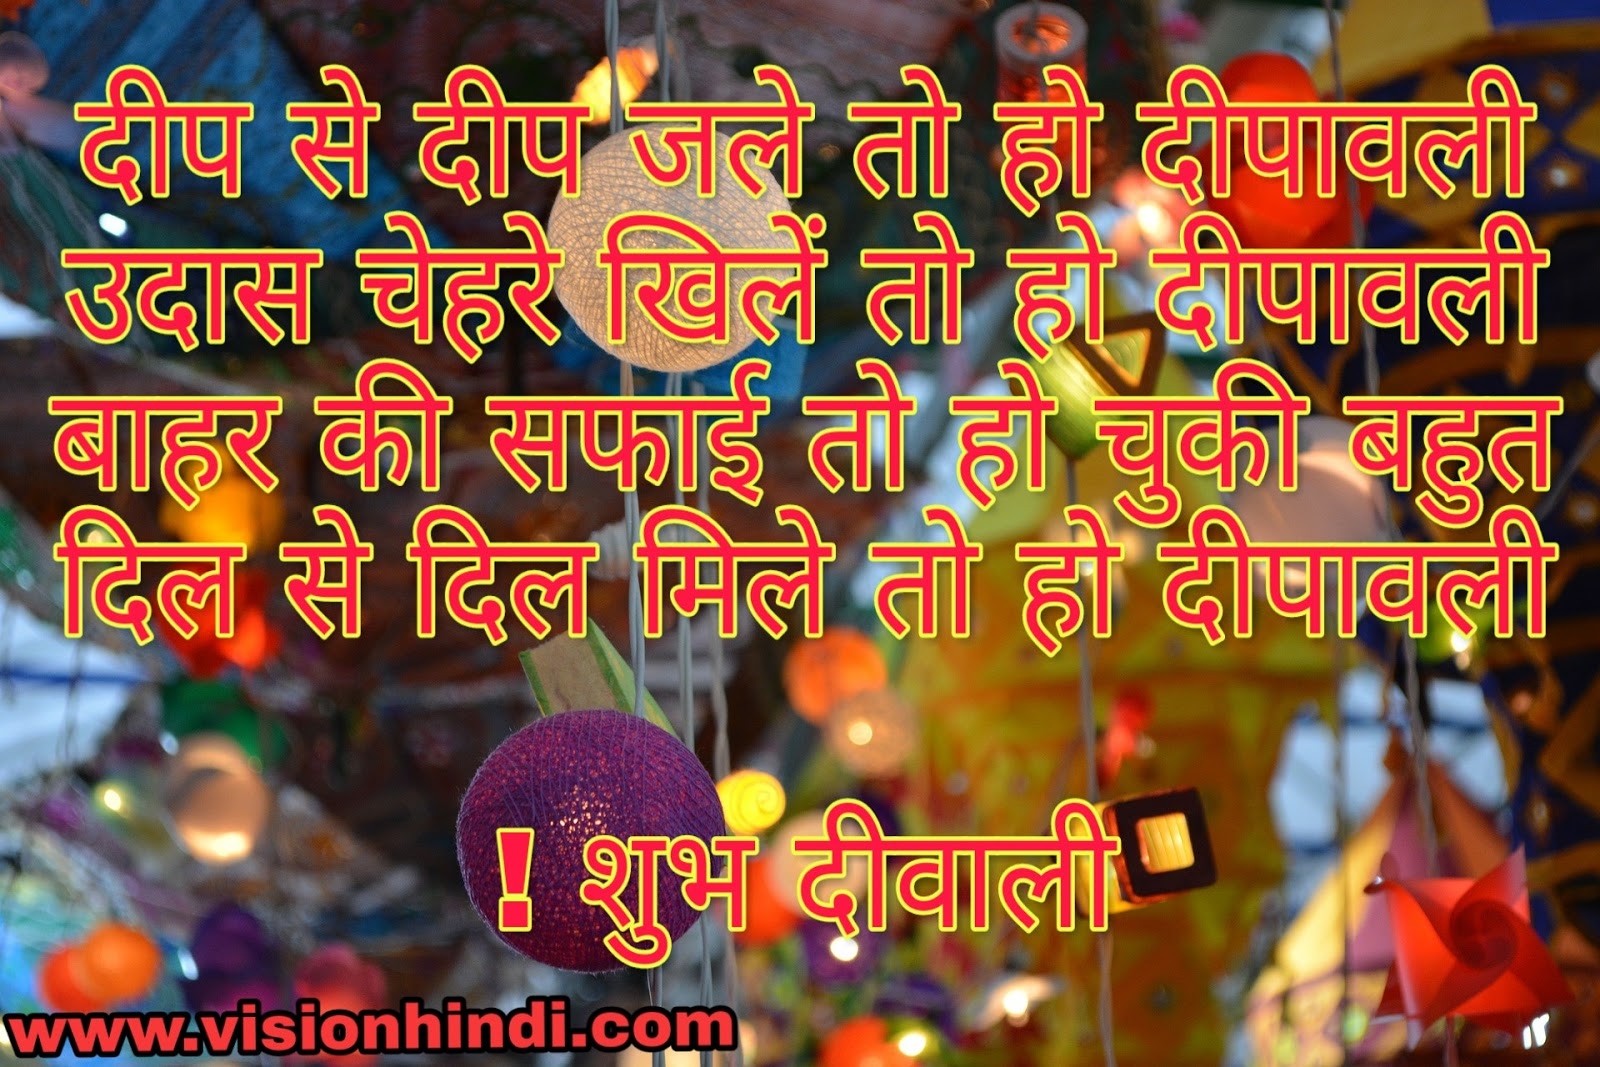 Happy-Diwali-Hd-Image-HiNdi-Shayri